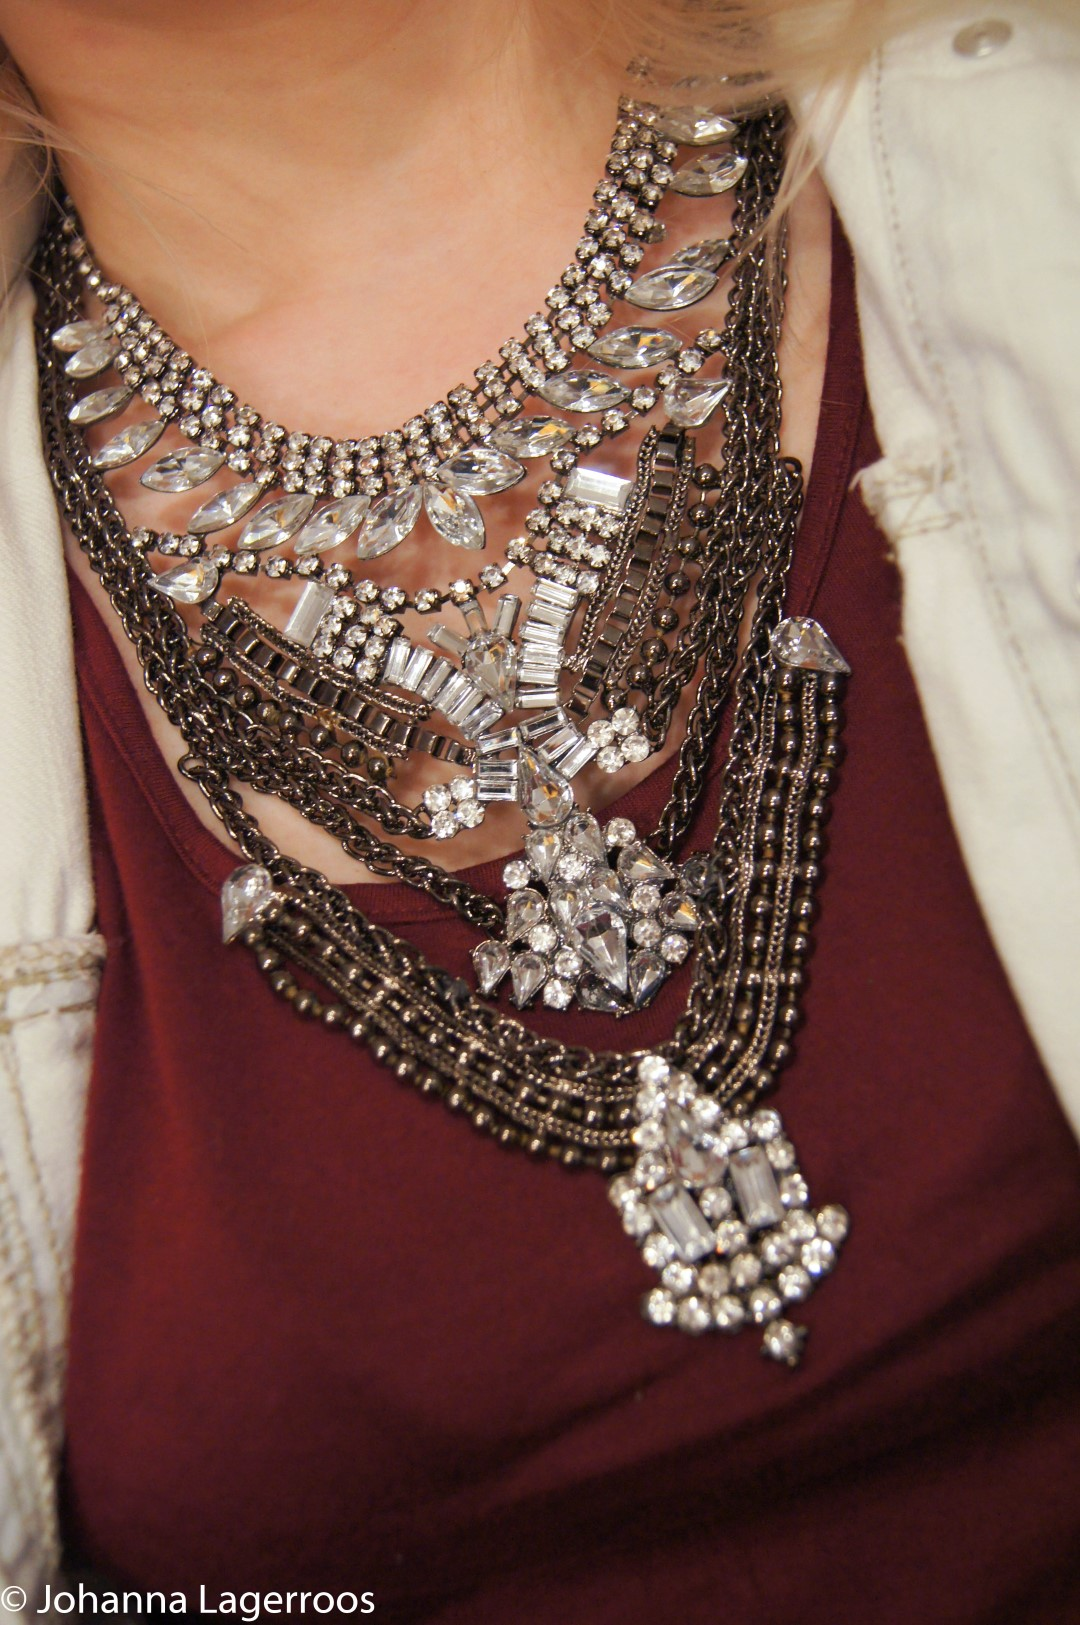 mirina hailey necklace